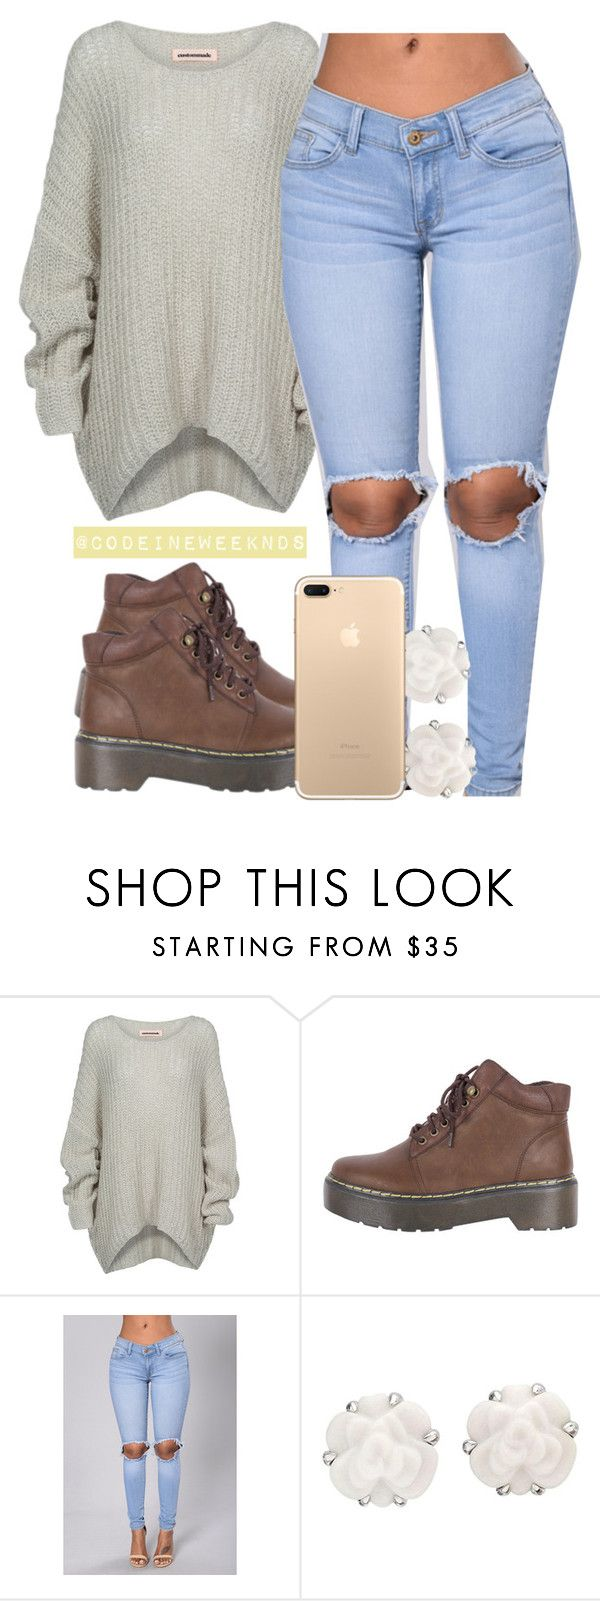 """12/27/16"" by codeineweeknds ❤ liked on Polyvore featuring Bodhi and Chanel"